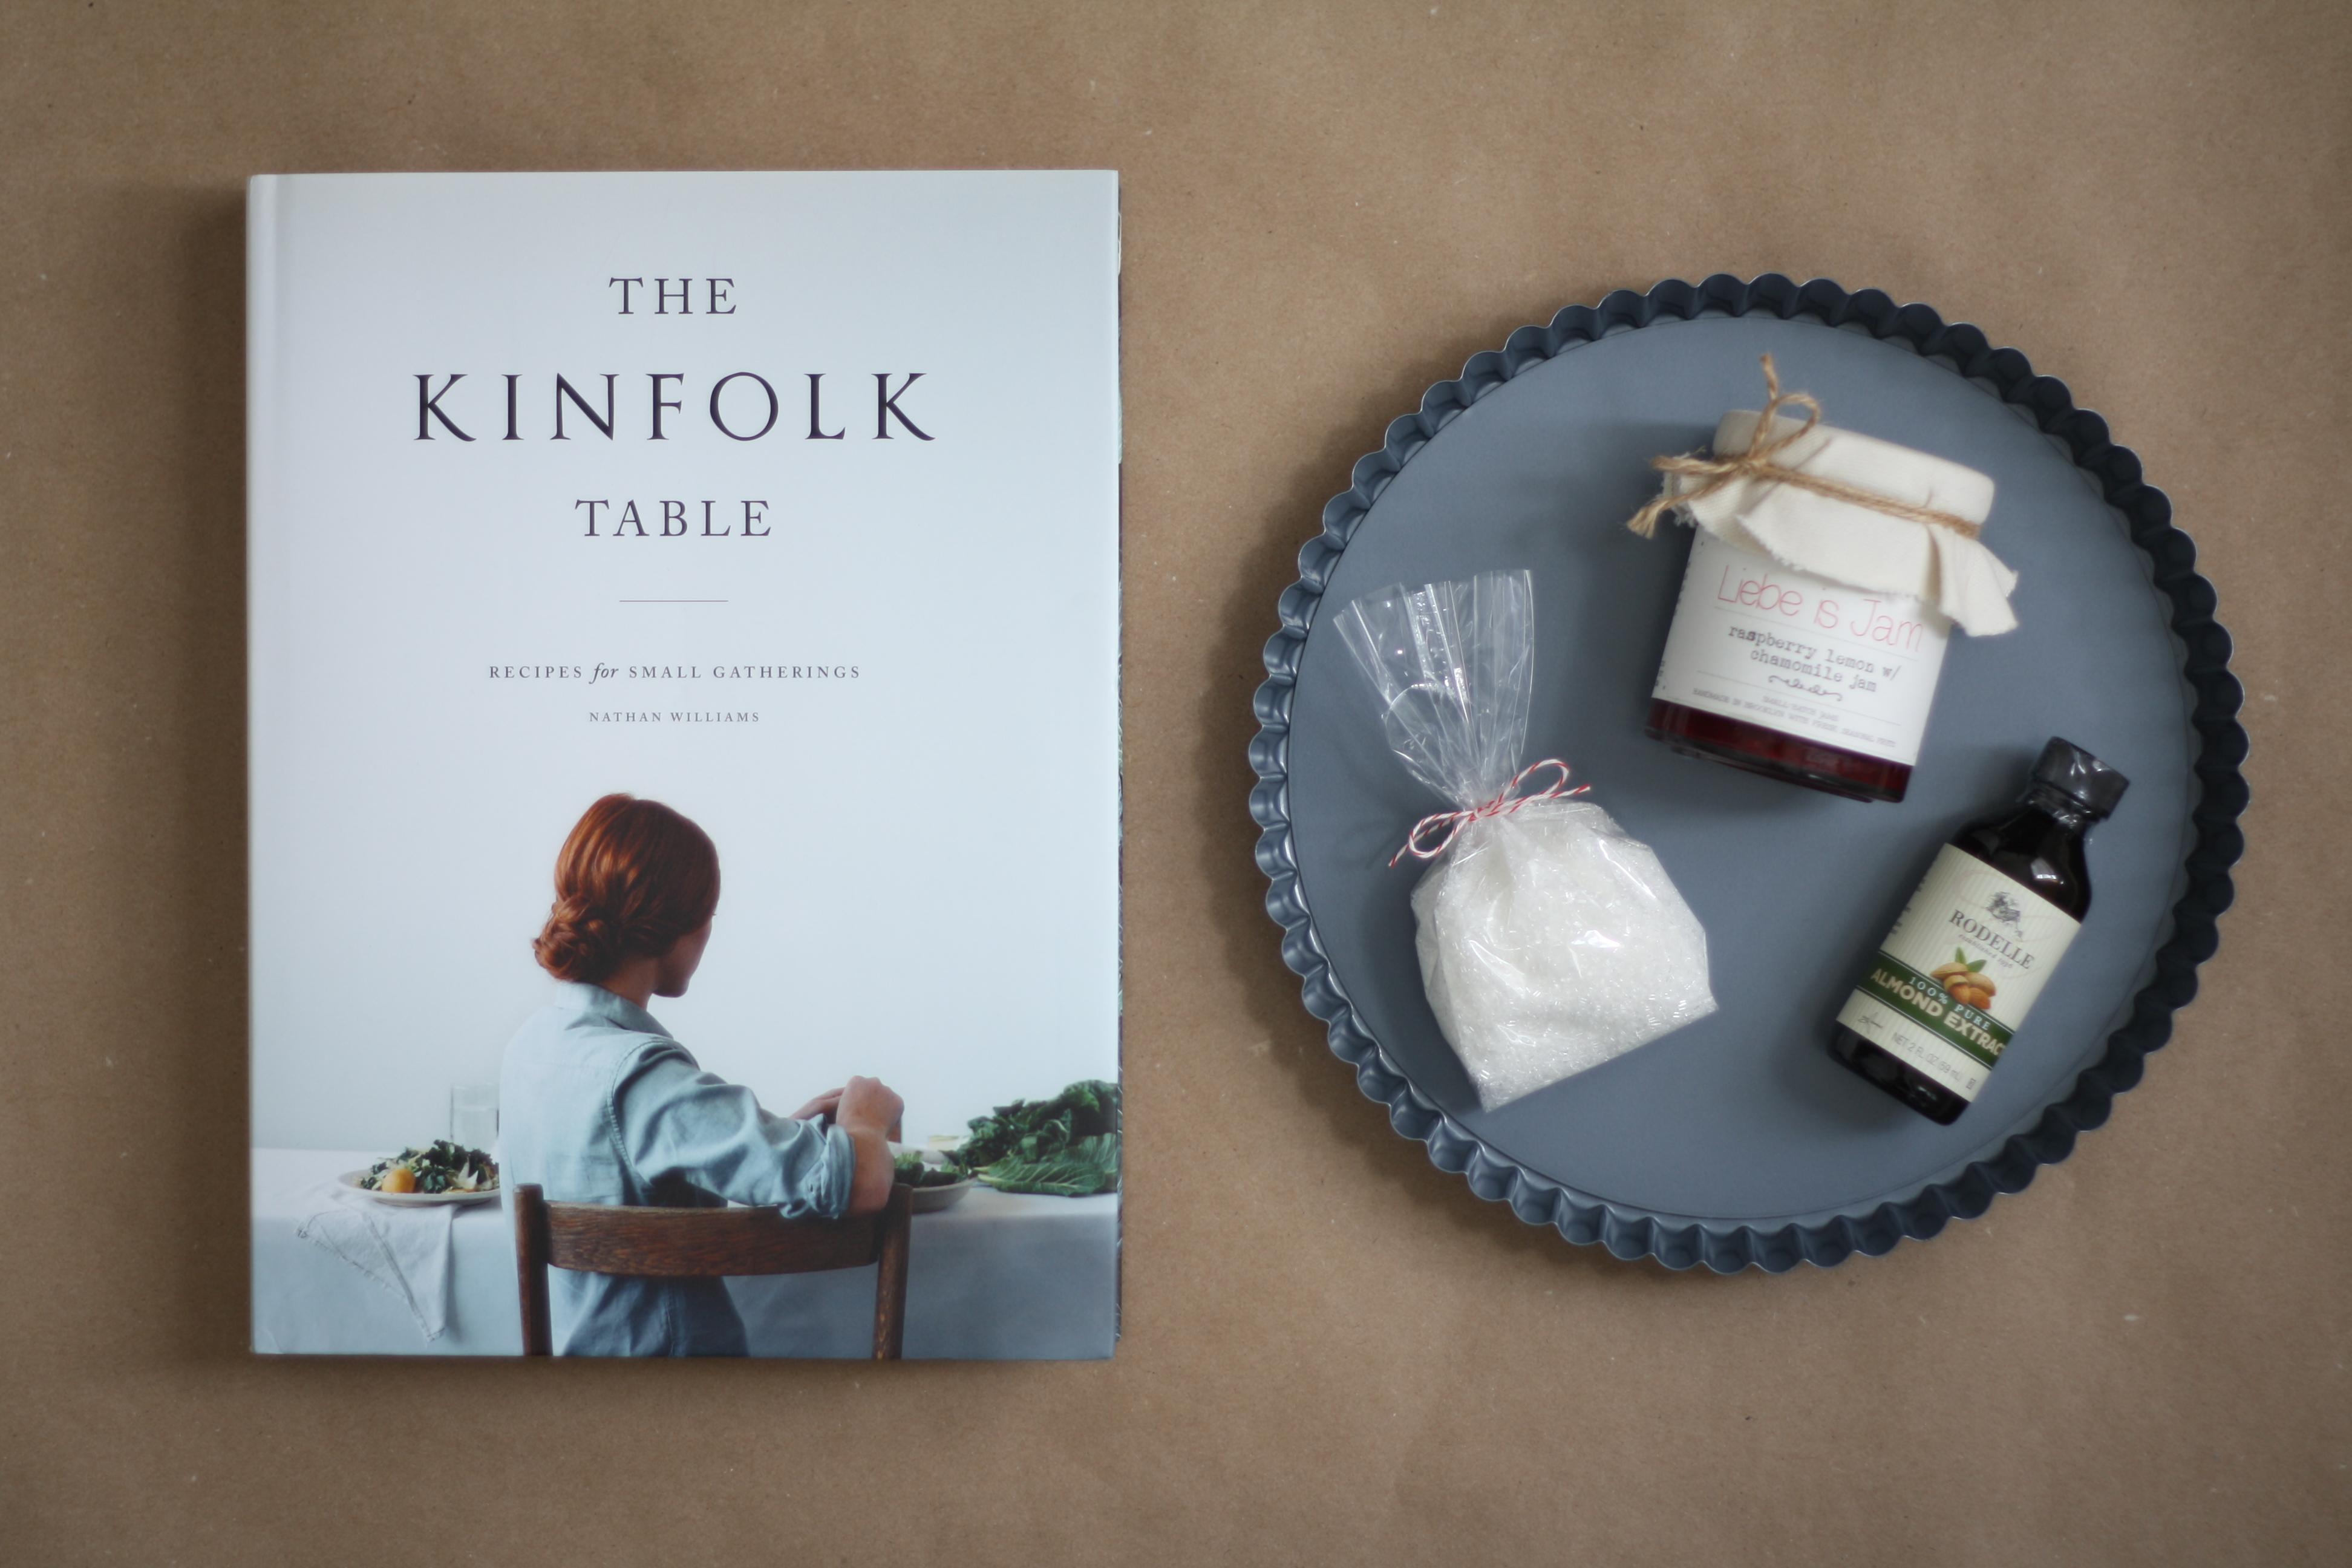 Almond jam tart the kinfolk table a giveaway for The kinfolk table